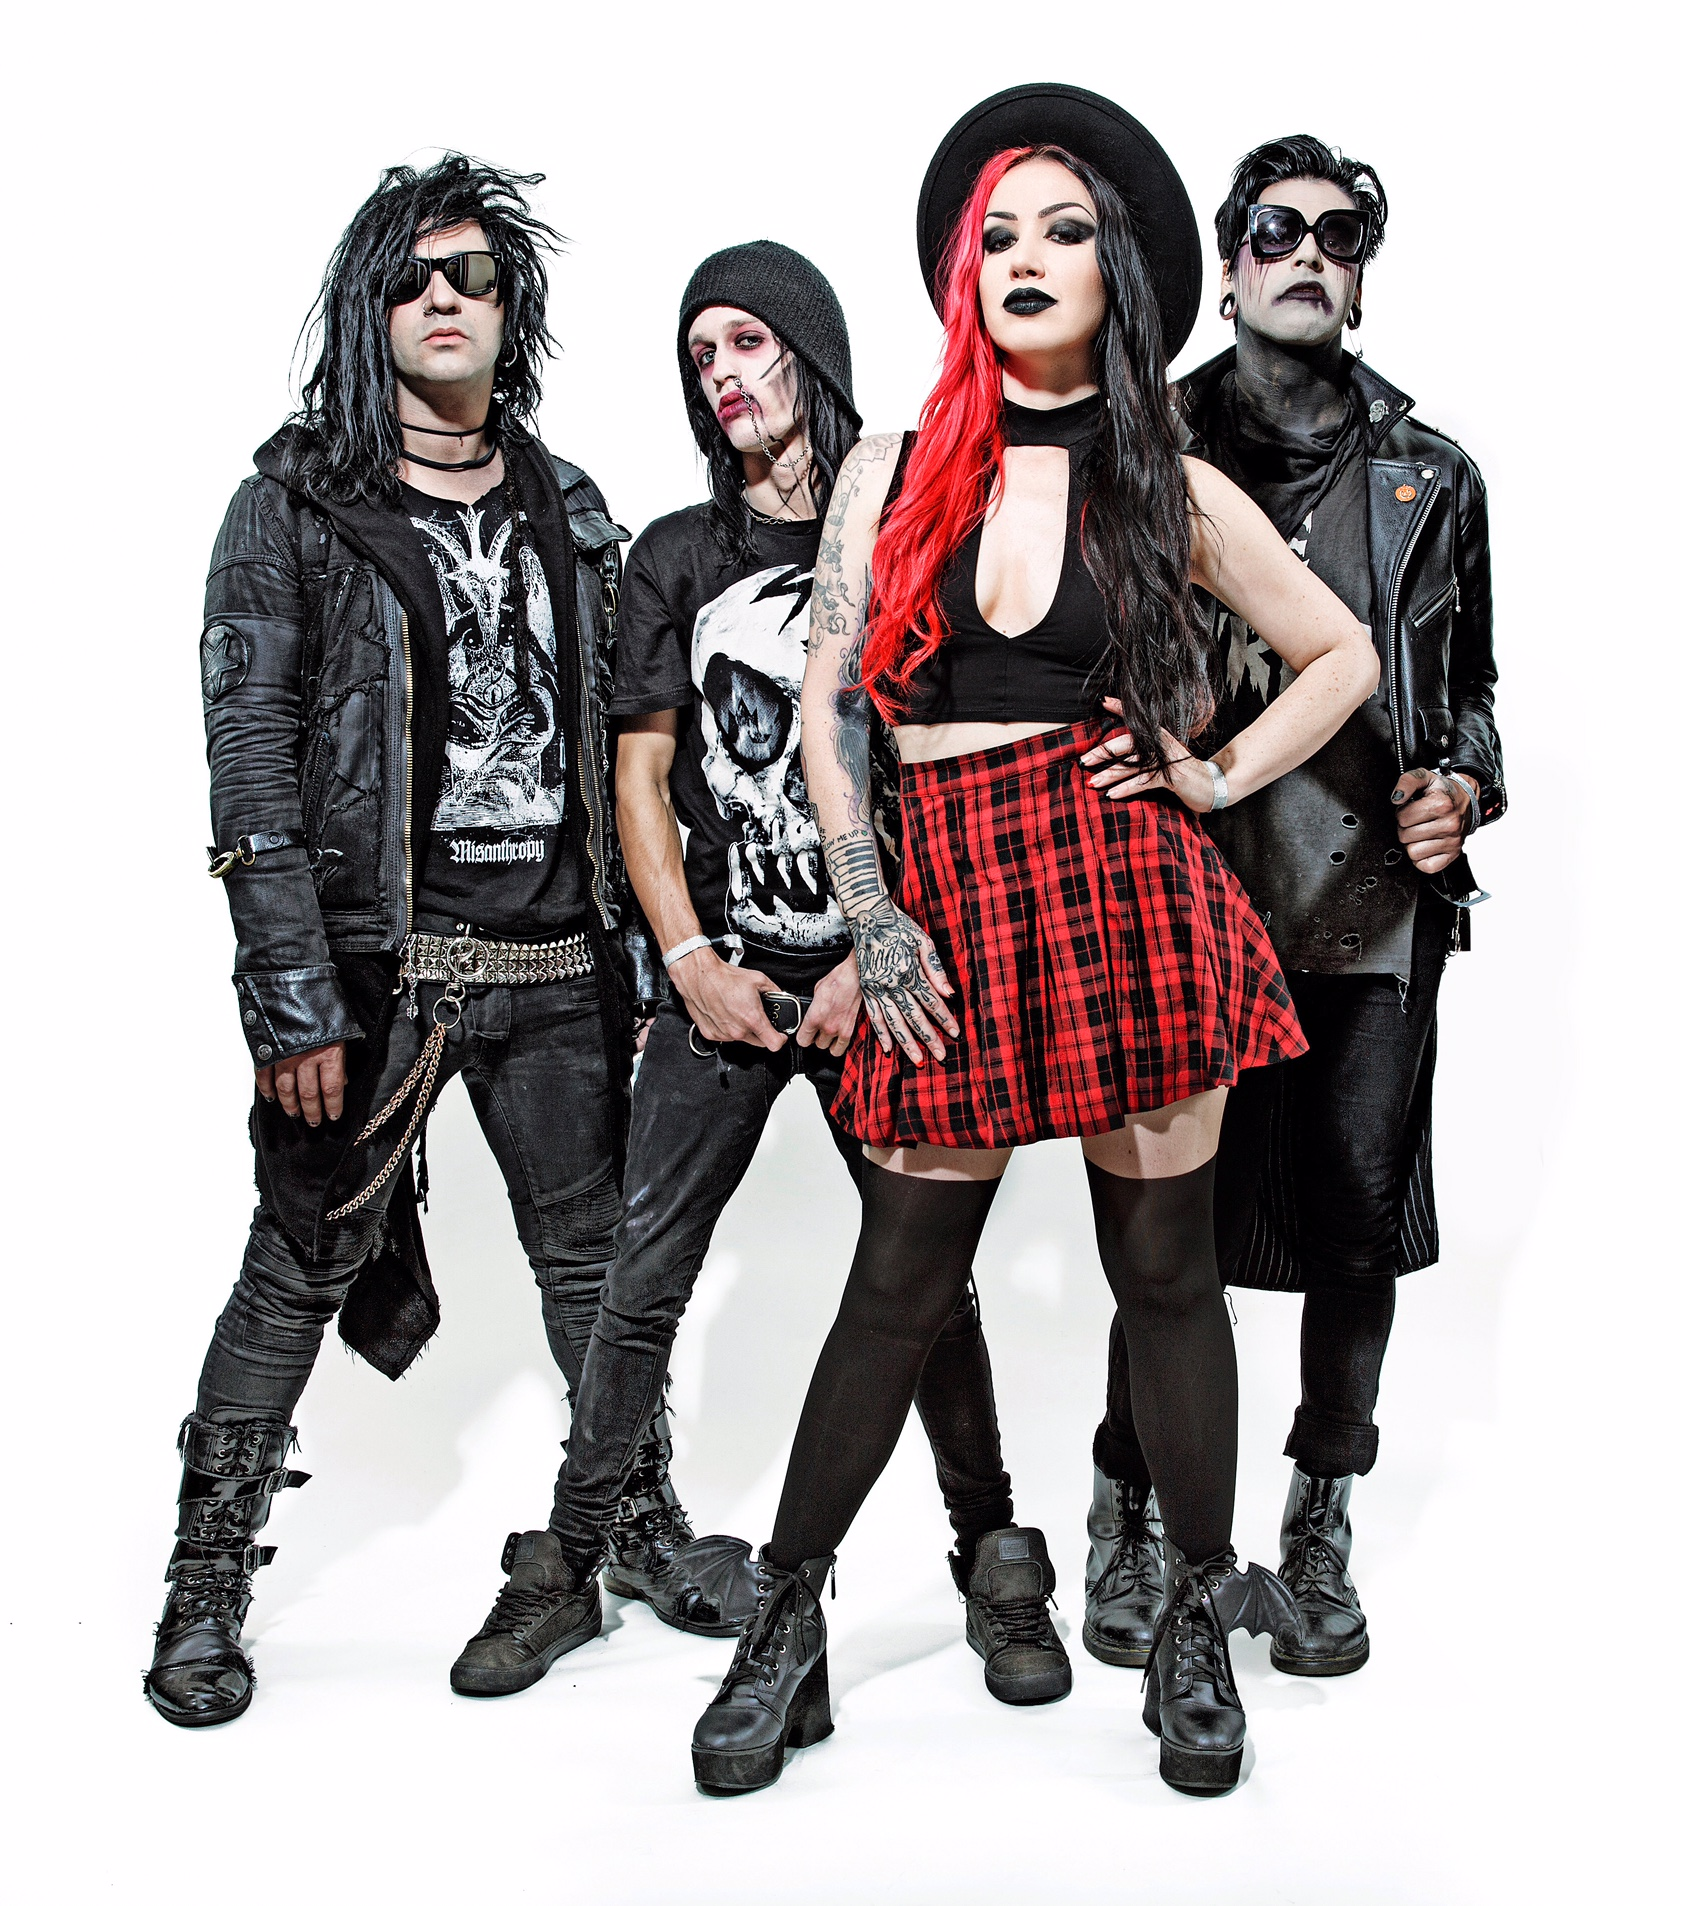 new years day reveal gangsta video! - altcorner